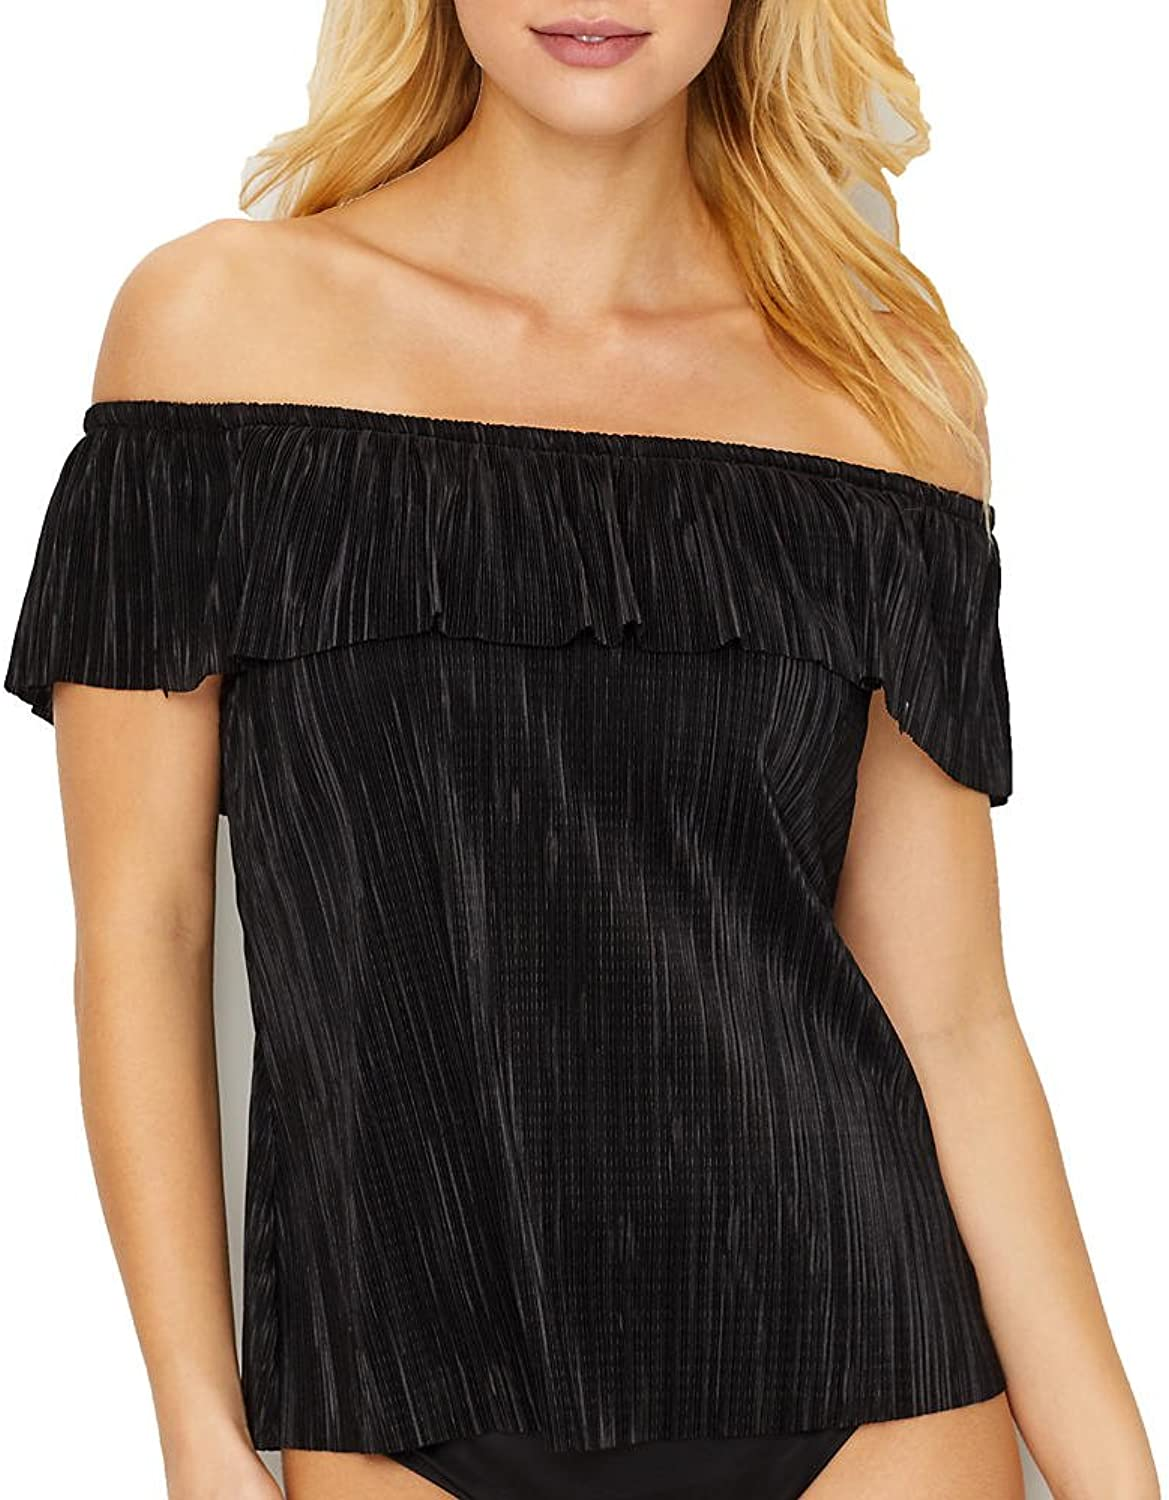 Magic Suit Pleats Please Kris Tankini Top